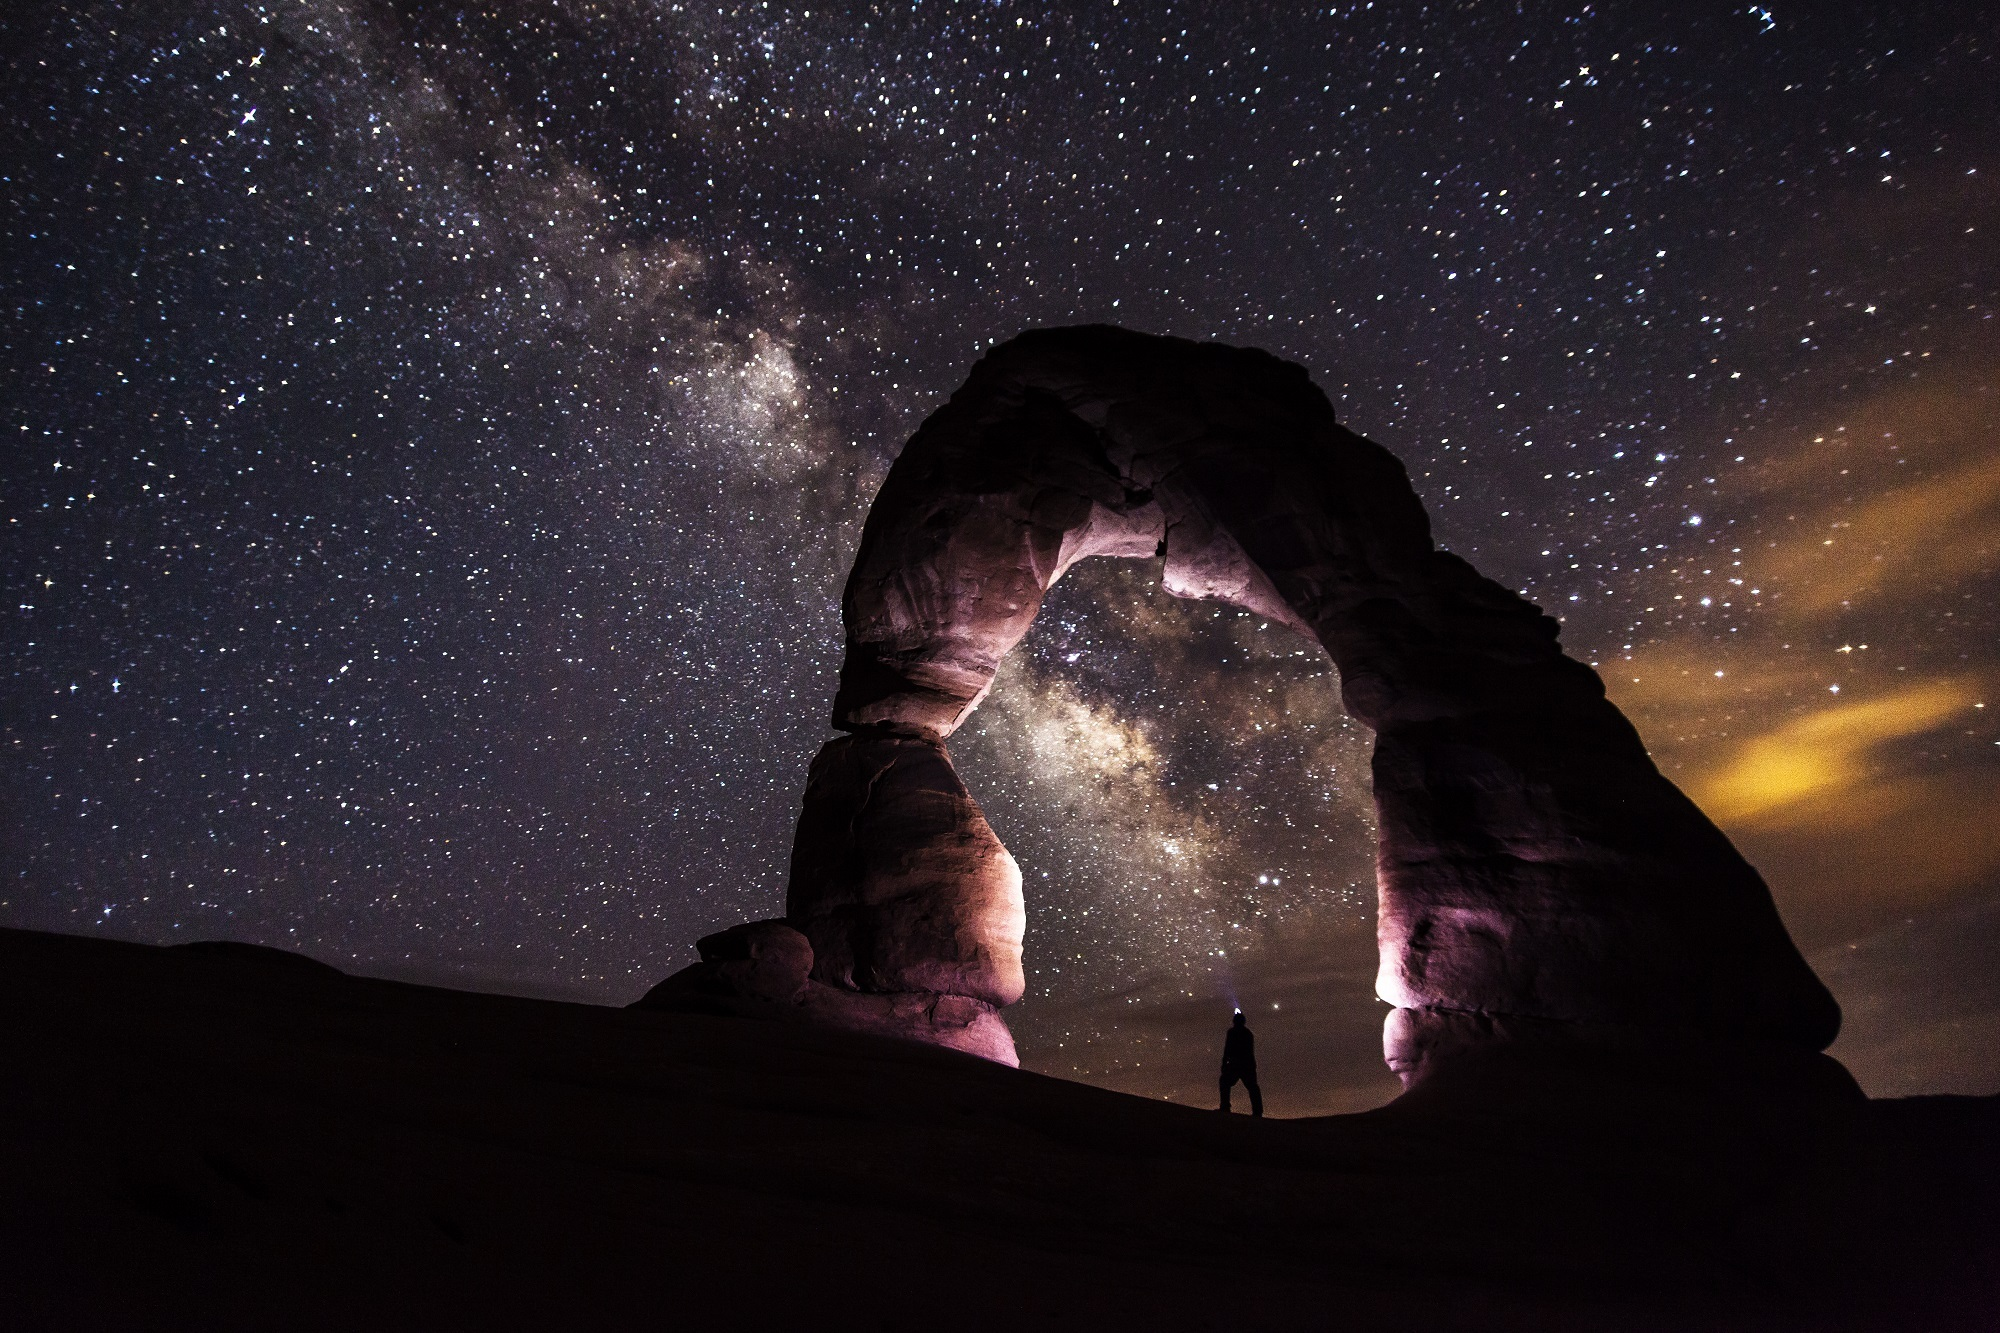 A photo of Arches National Park at night, Milky Way, by skeeze on Pixabay